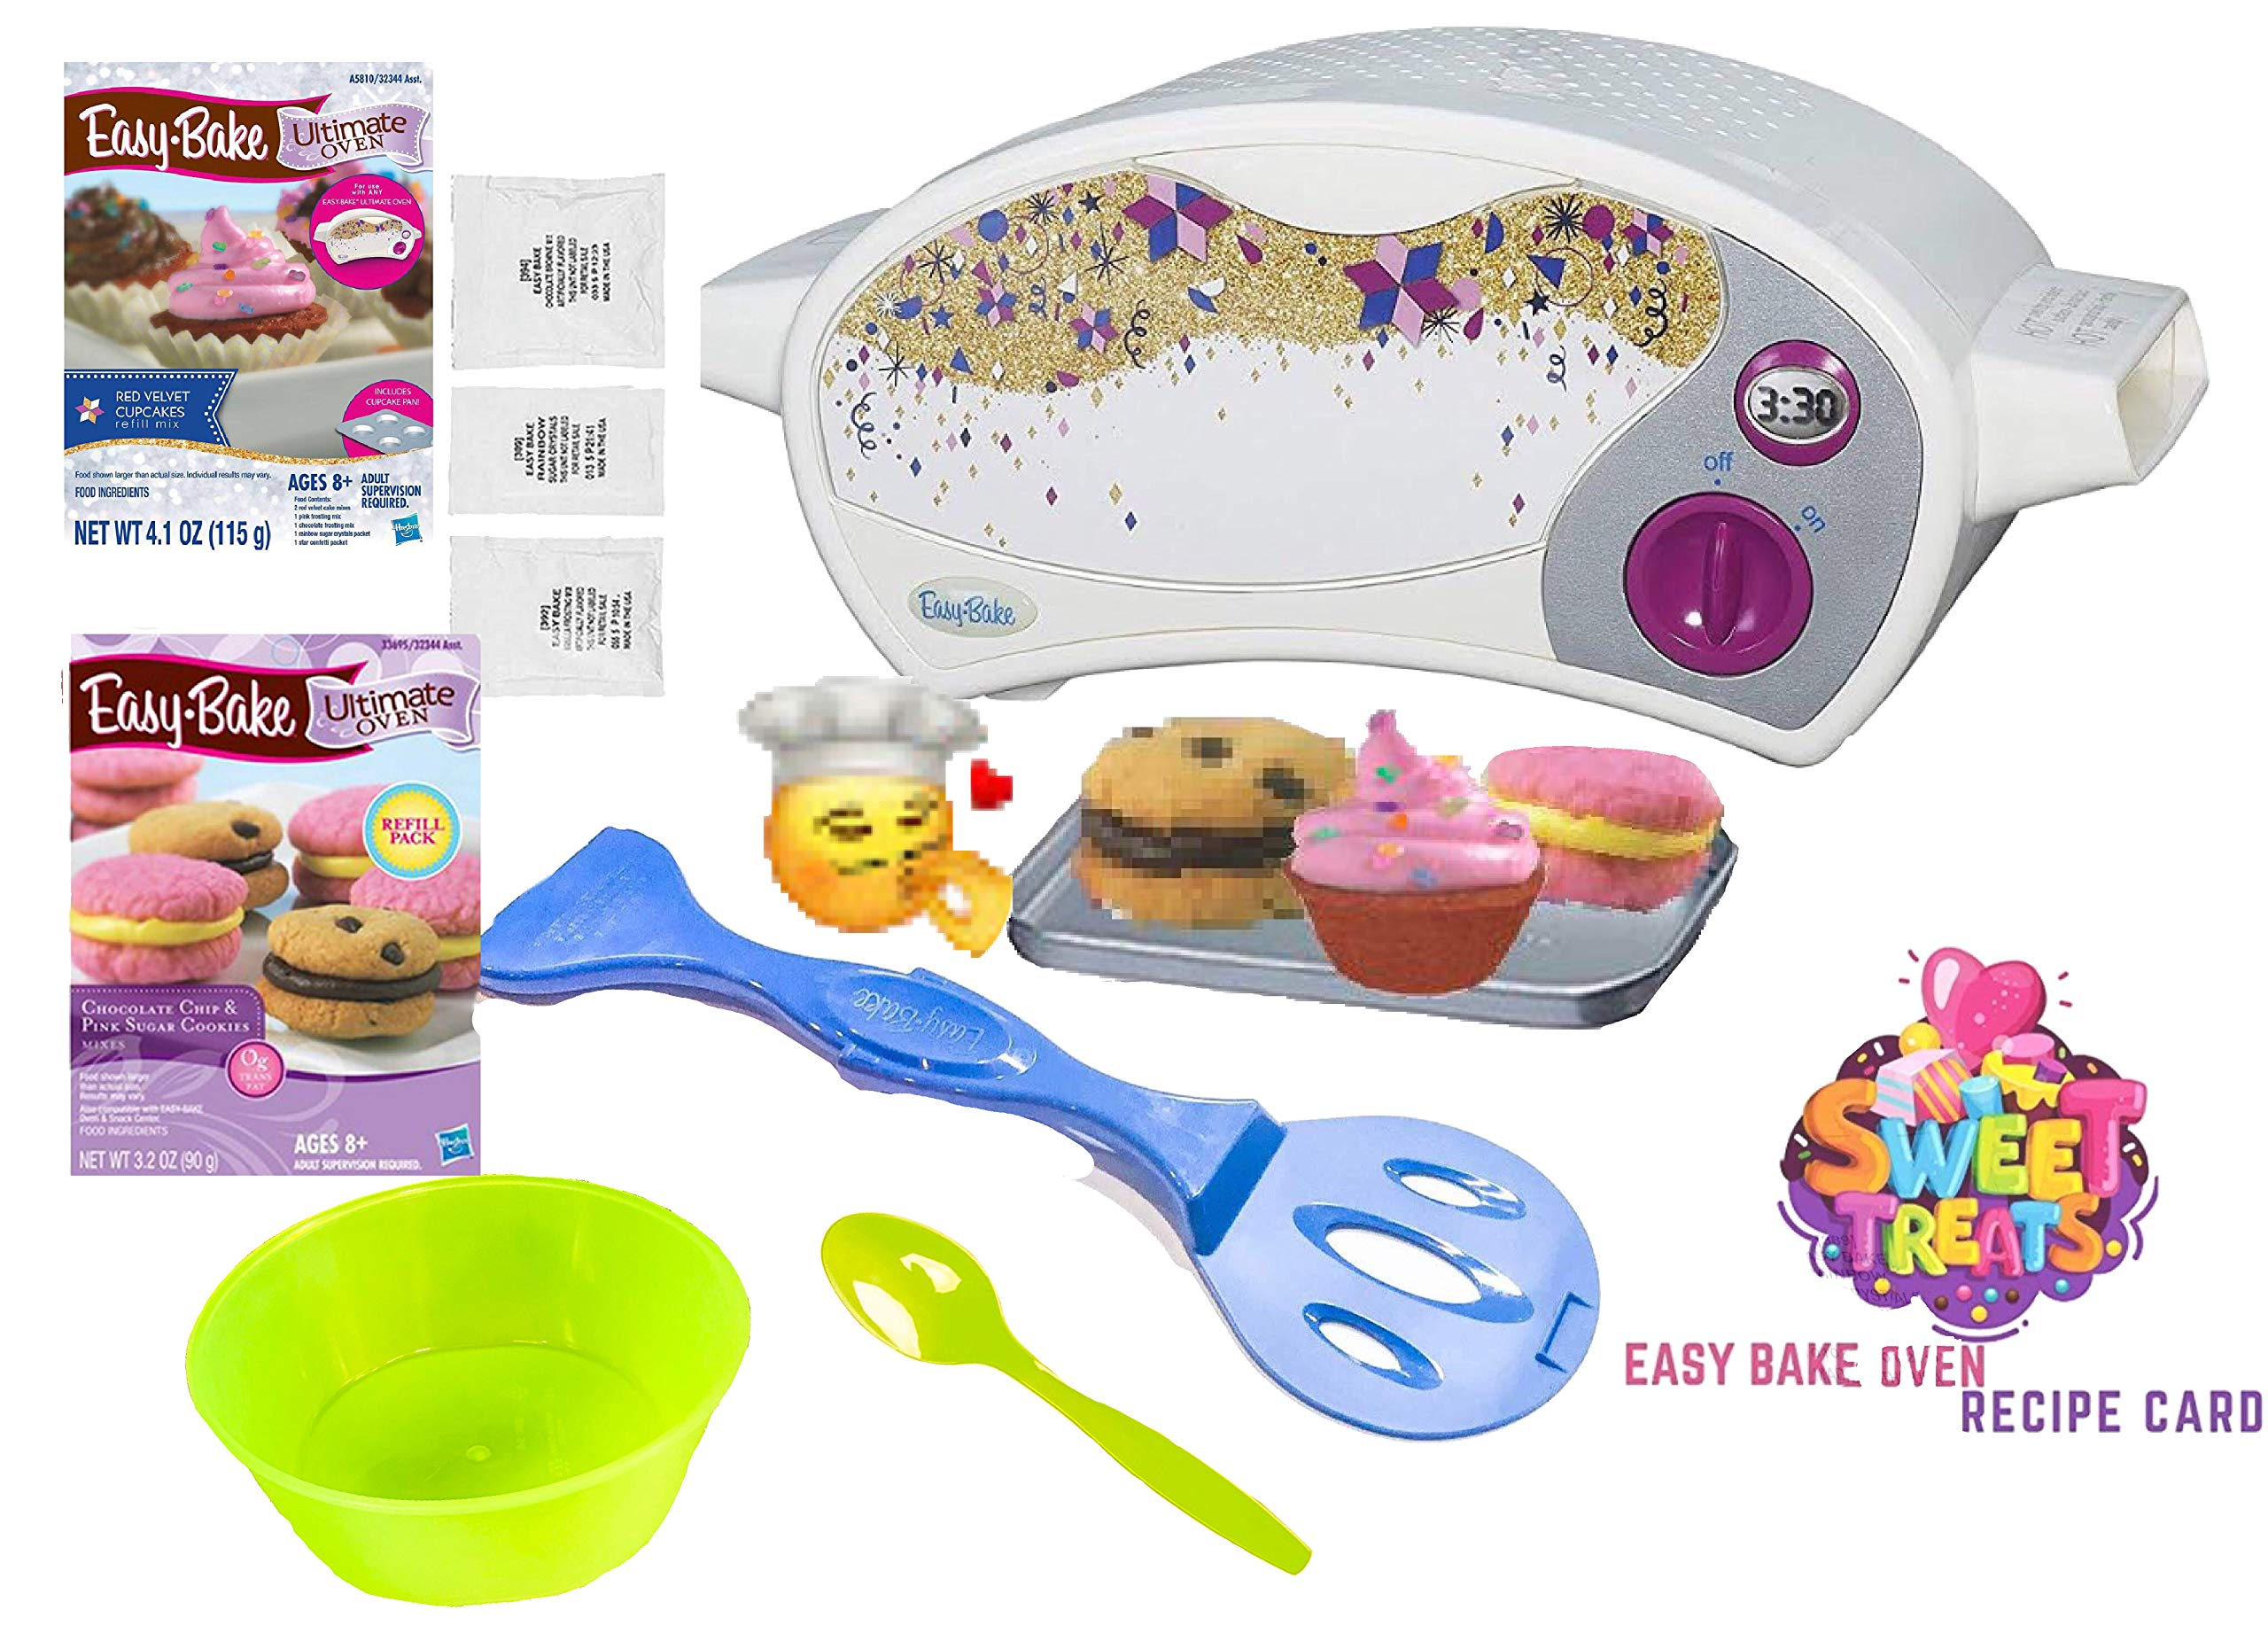 Party Lab 365 Easy Bake Ultimate Oven Baking Star Edition + 2 Oven Refill Mixes + 2 Sweet Treats Tasty Oven Recipes + Mixing Bowl and Spoon (5 Total Items) (Yellow) by Party Lab 365